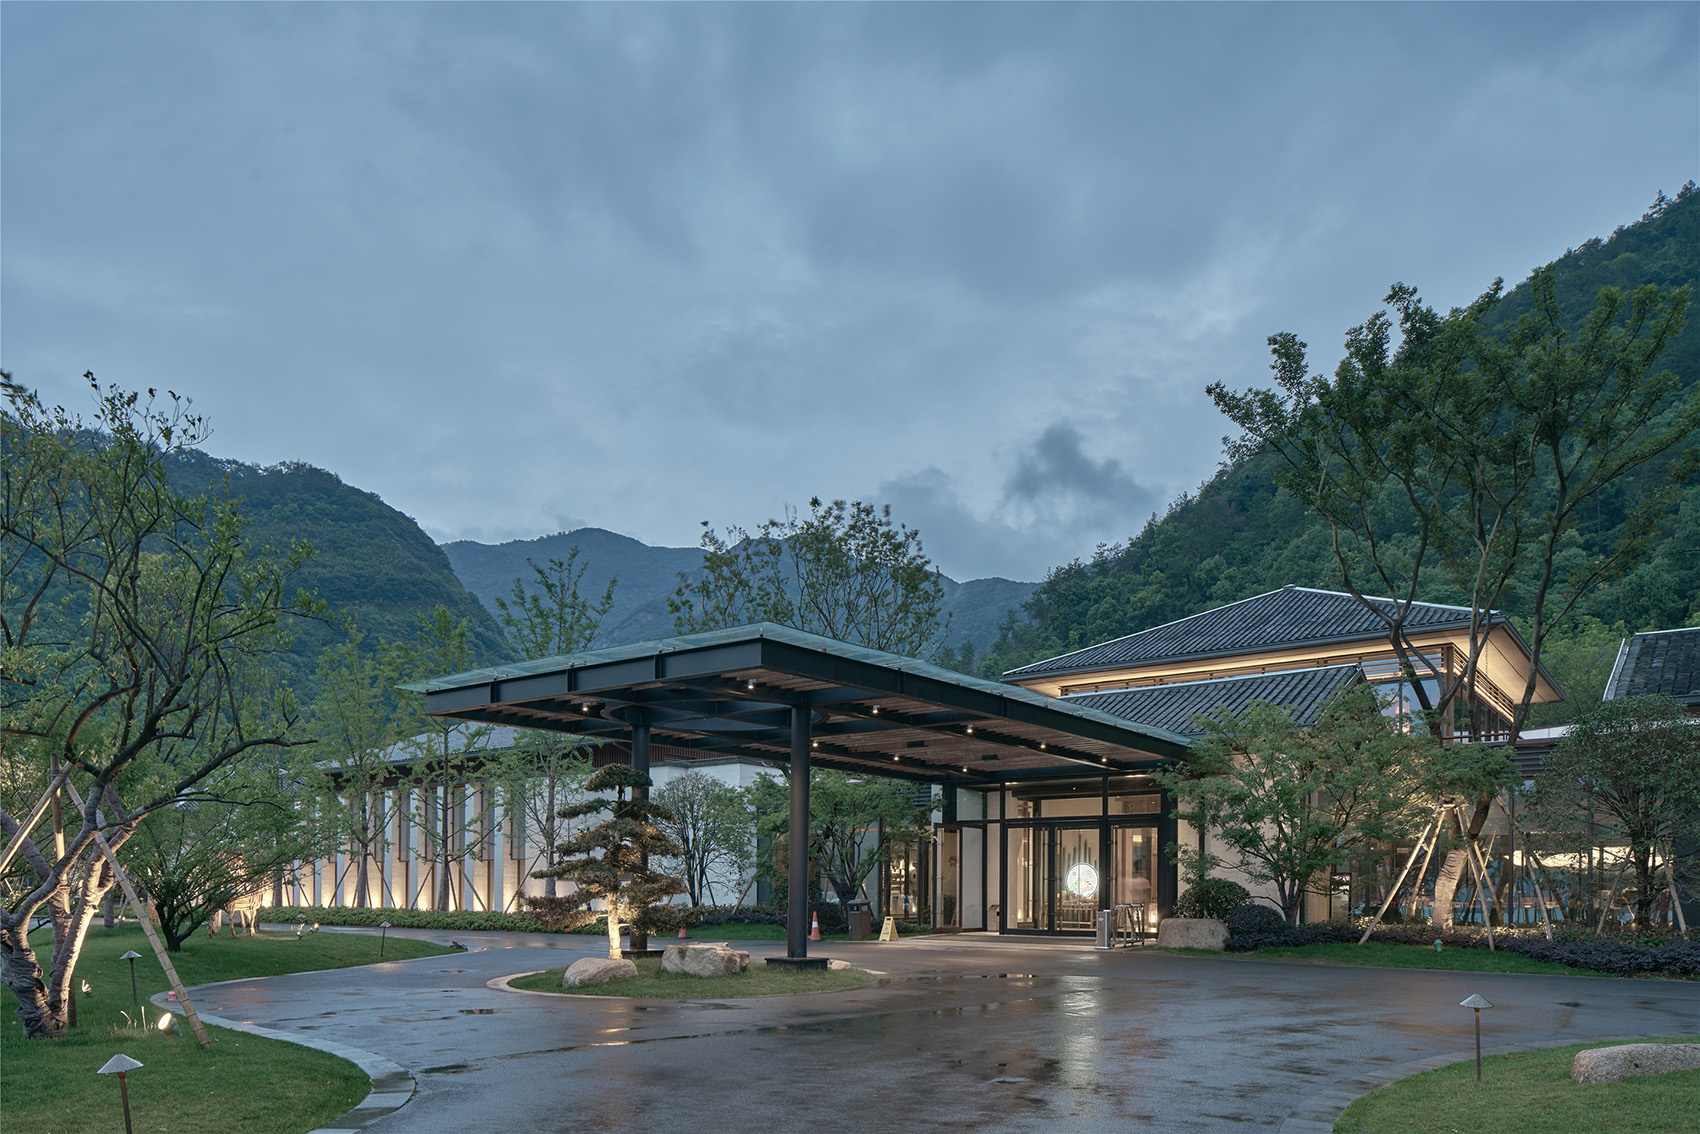 028-fuchun-mountain-resort-china-by-the-design-institute-of-landscape-architecture-china-academy-of-art.jpg